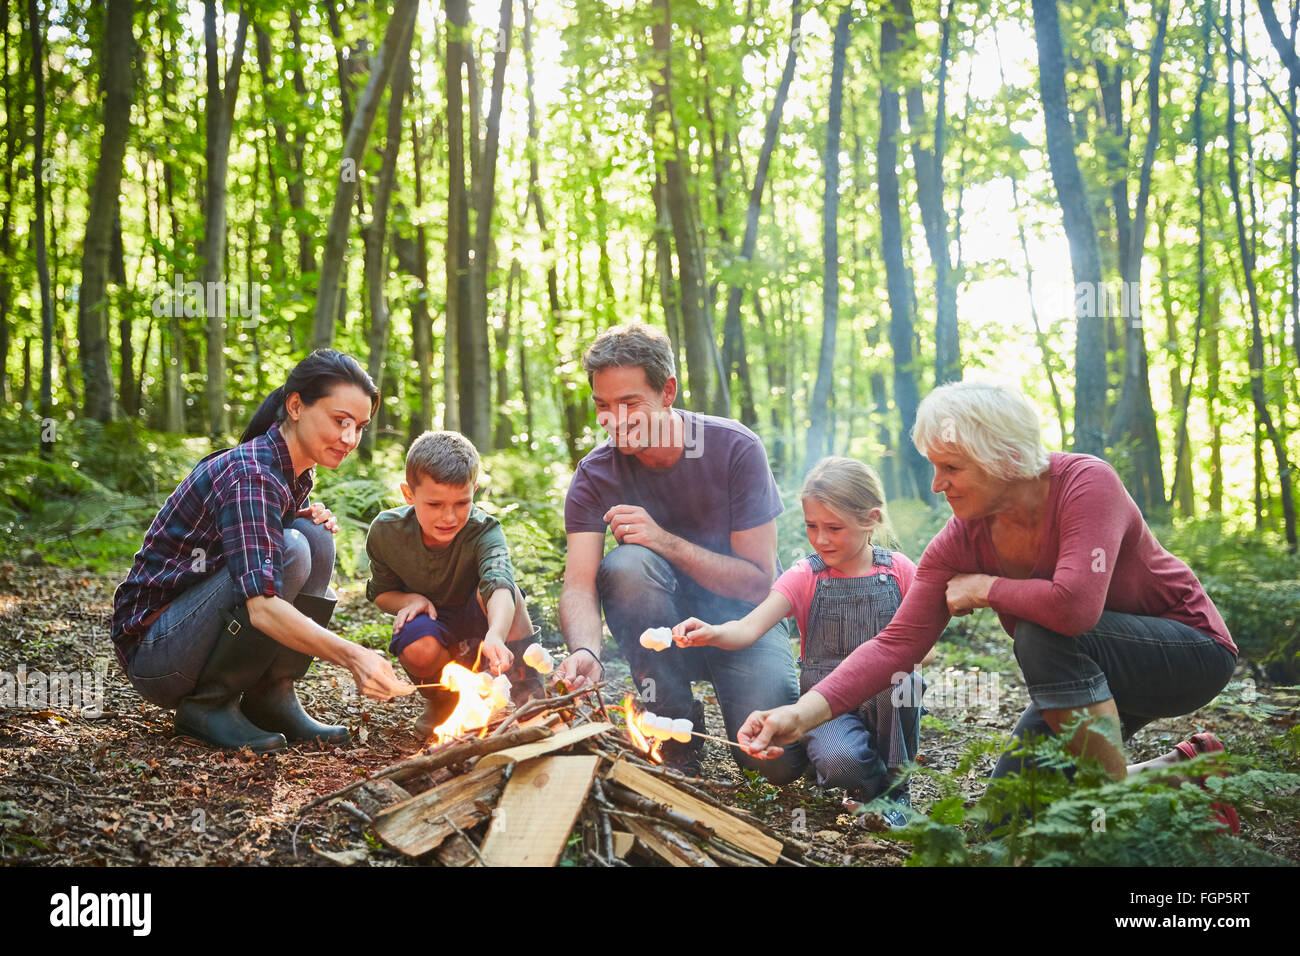 Multi-generation family roasting marshmallows at campfire in forest - Stock Image